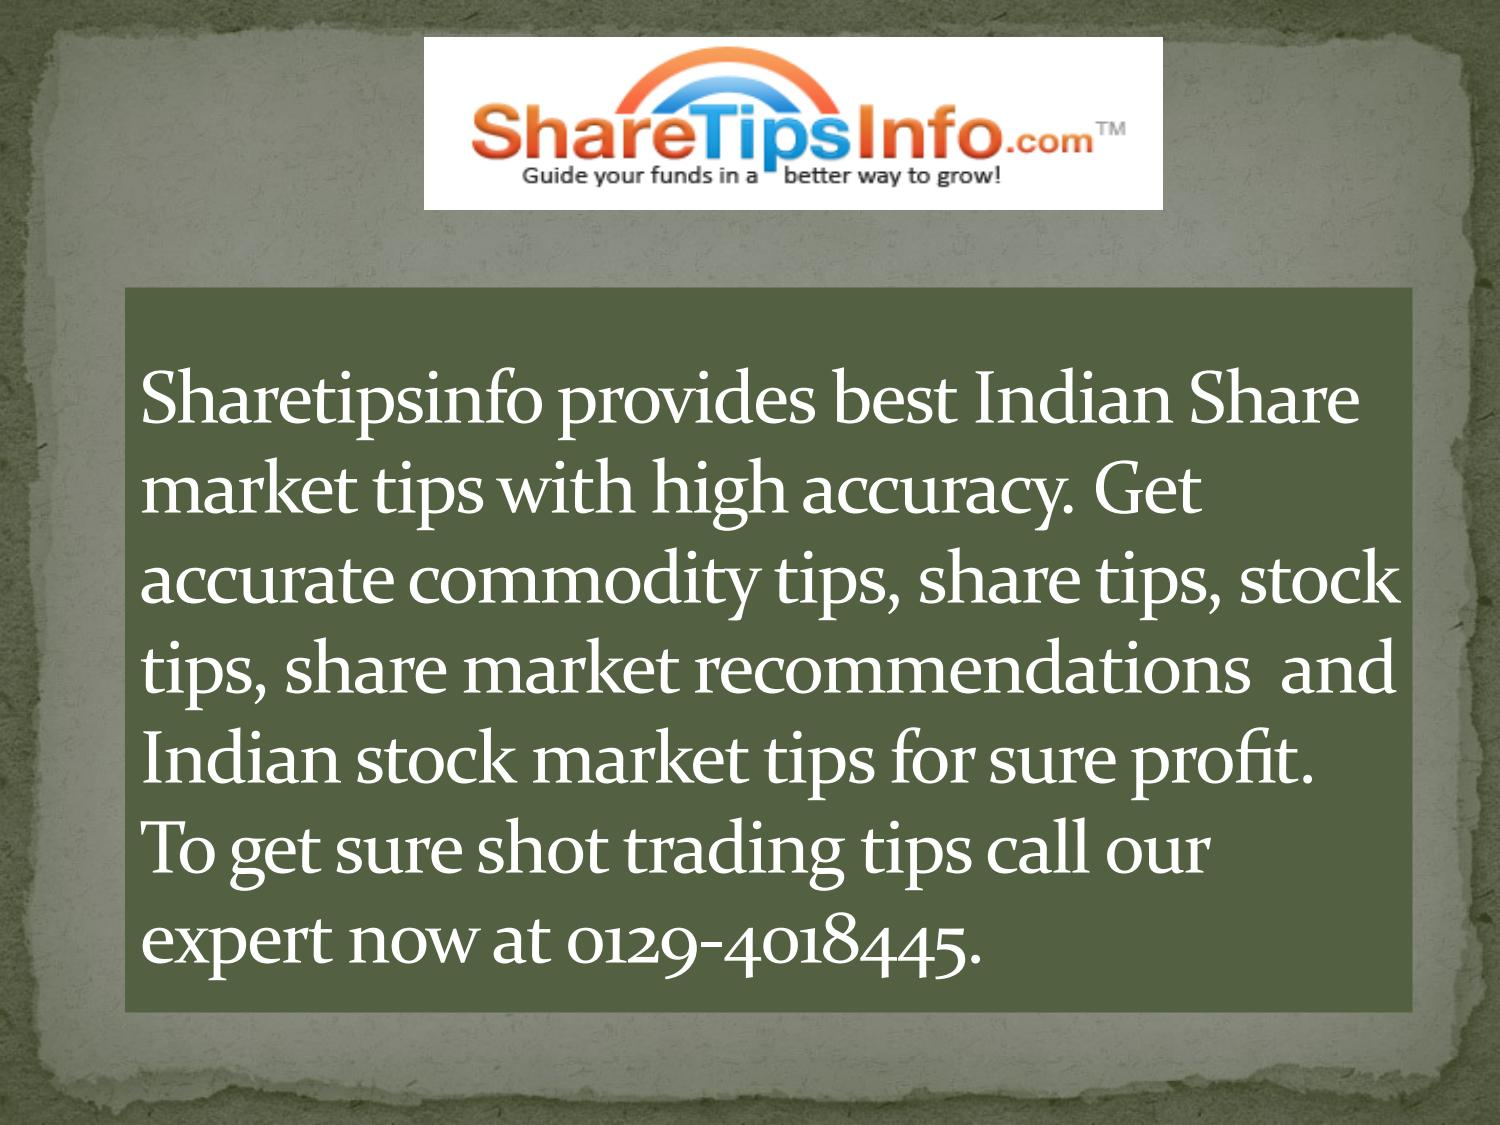 Share Trading Recommendations